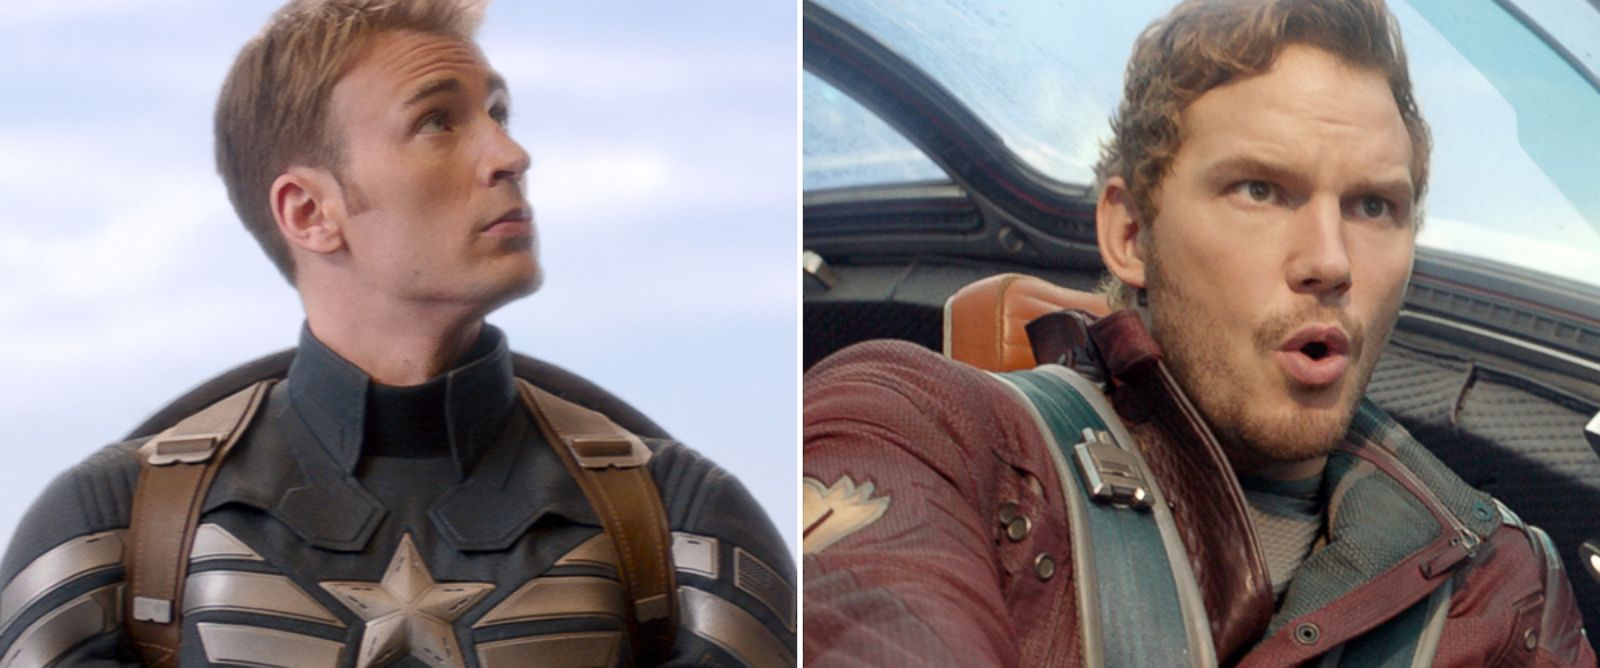 PHOTO: Chris Evans, left, as Captain America, and Chris Pratt as Starlord.